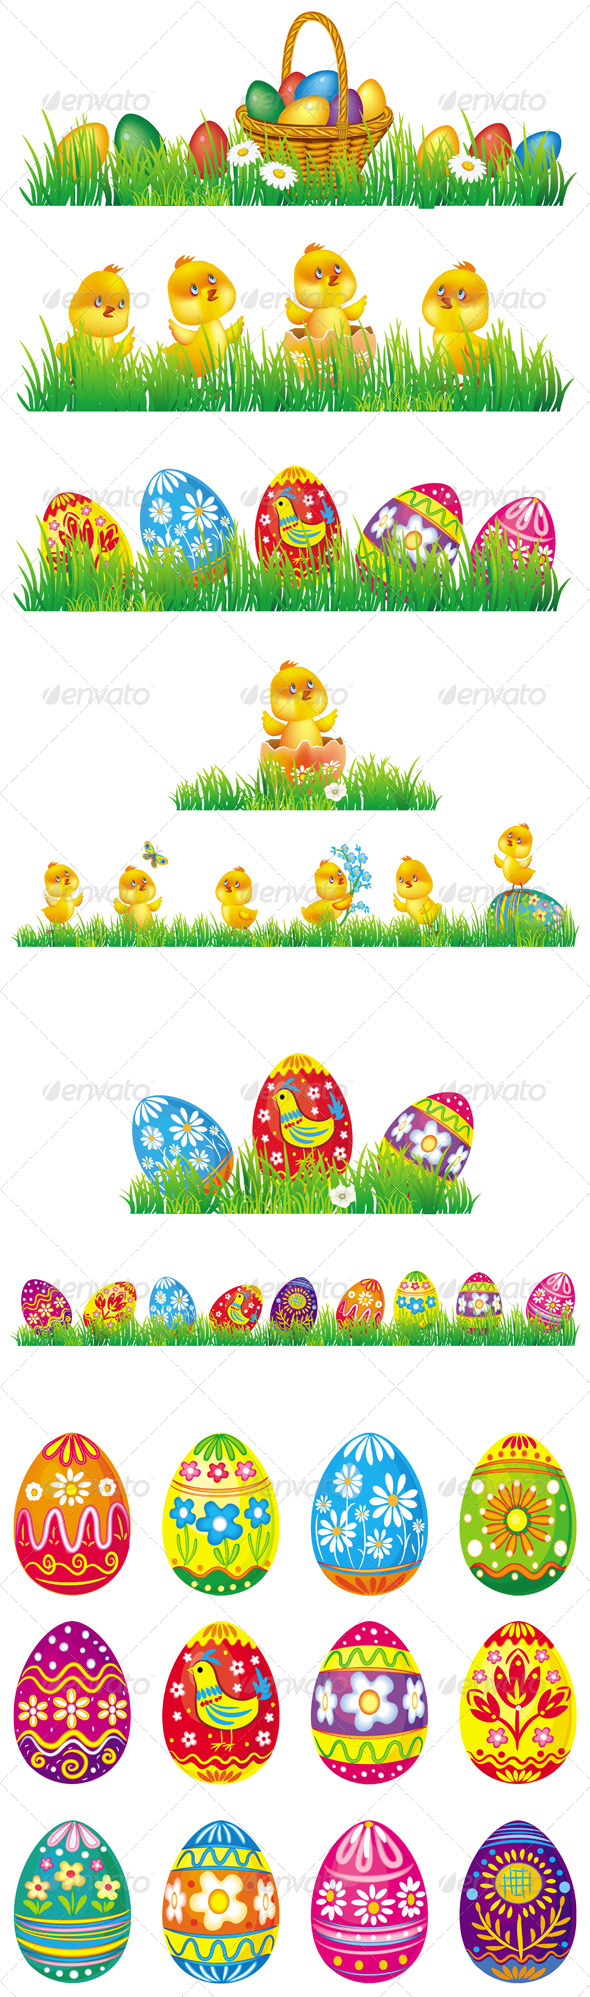 GraphicRiver Easter Eggs and Chicken in Grass 6660755